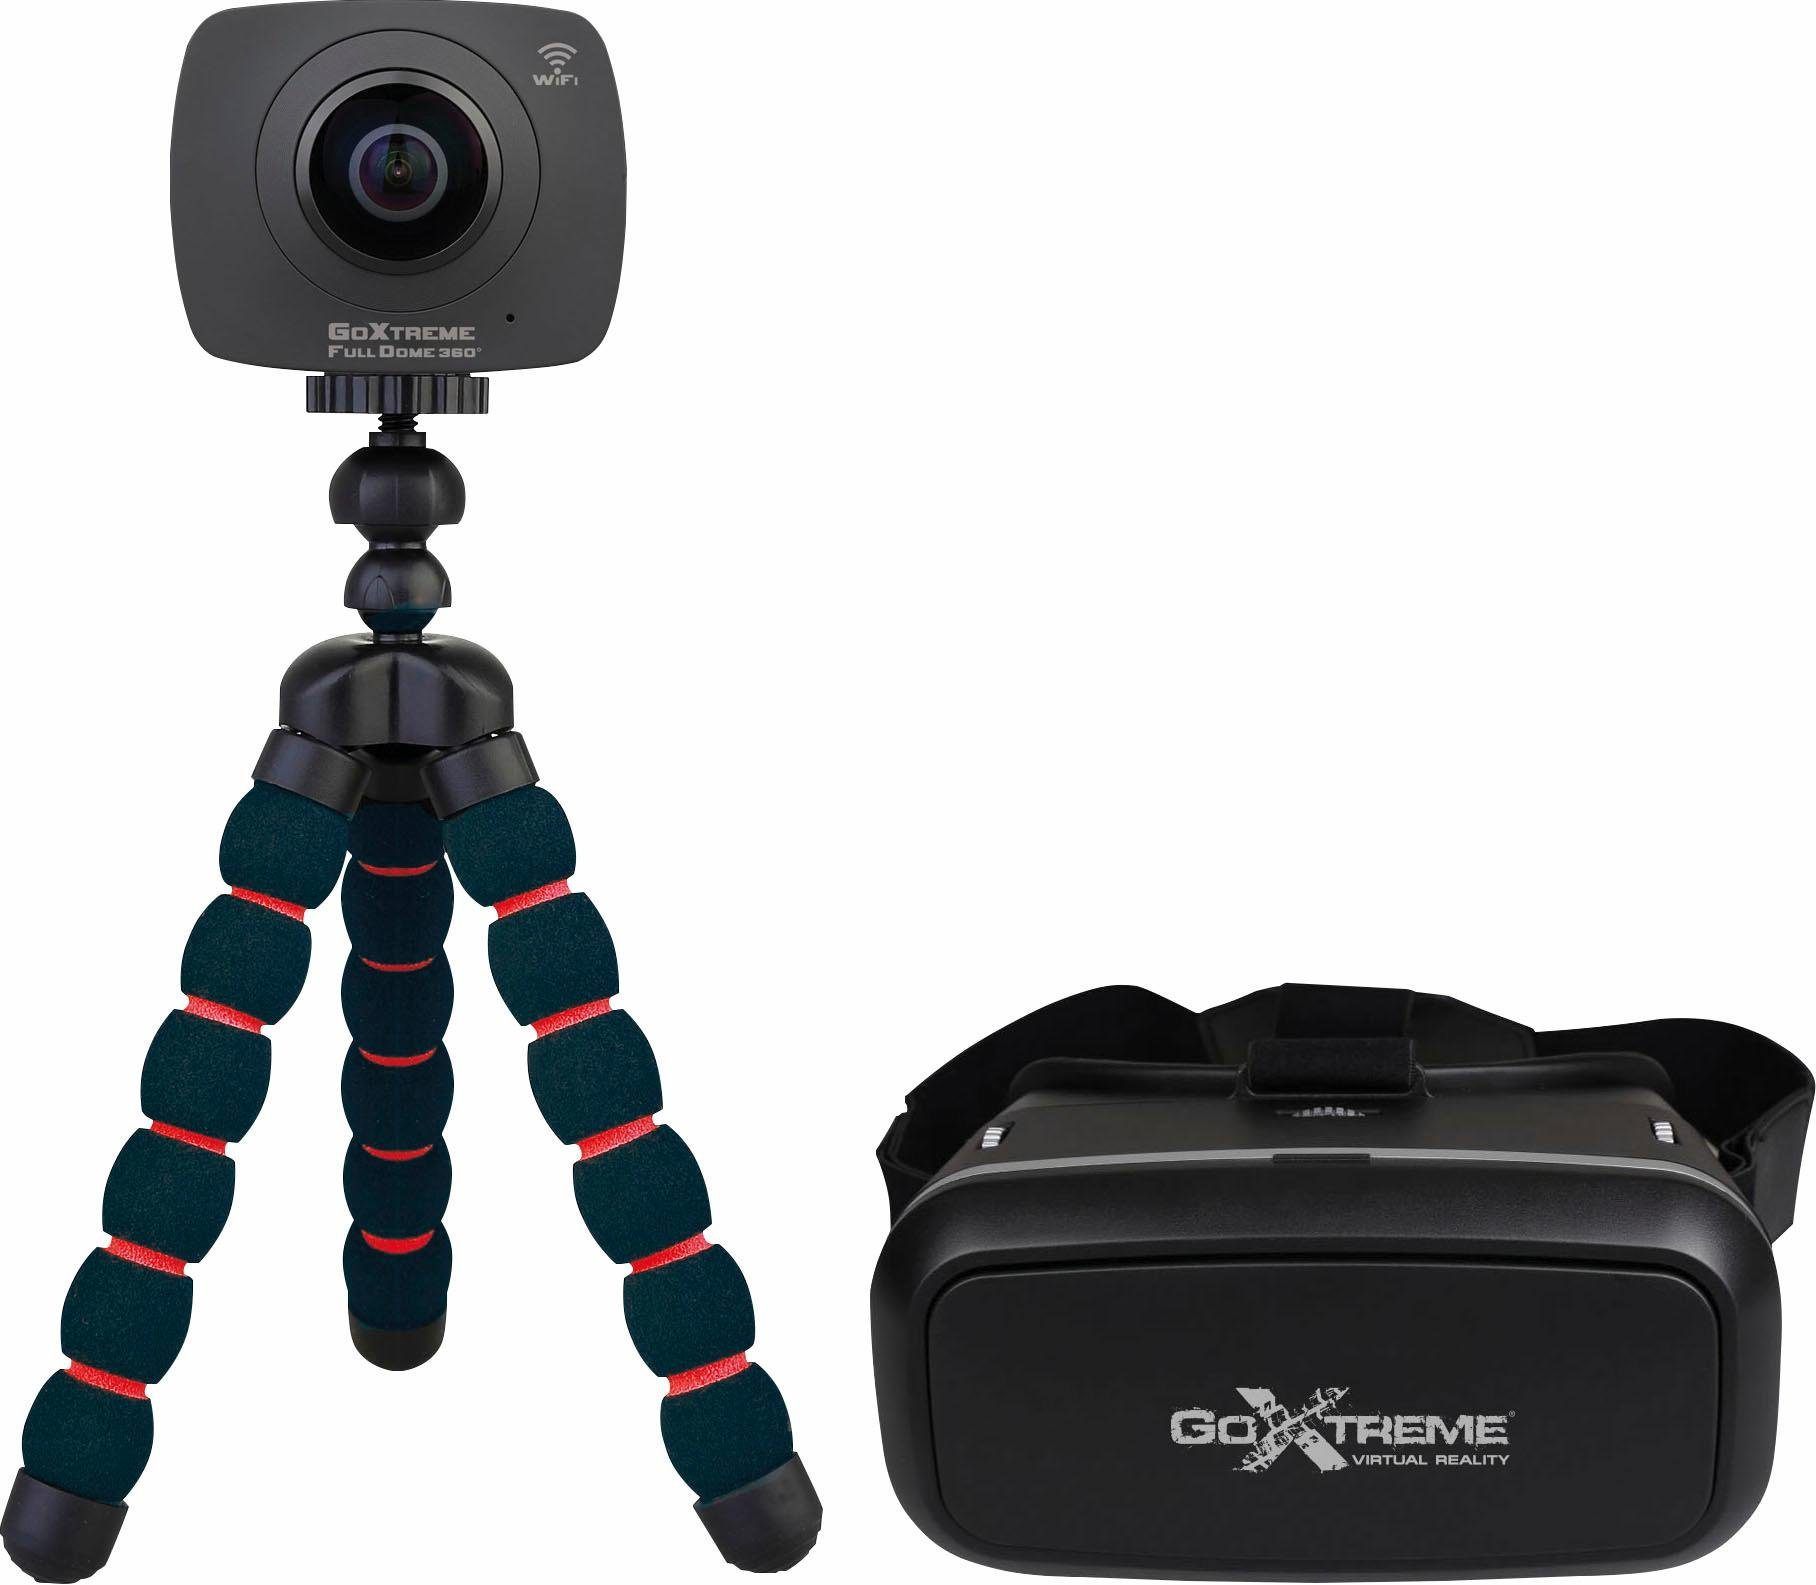 Full Dome 360° VR Headset Bundle Panorama Kamera, 4 Megapixel, 2,4 cm (1 Zoll) Display